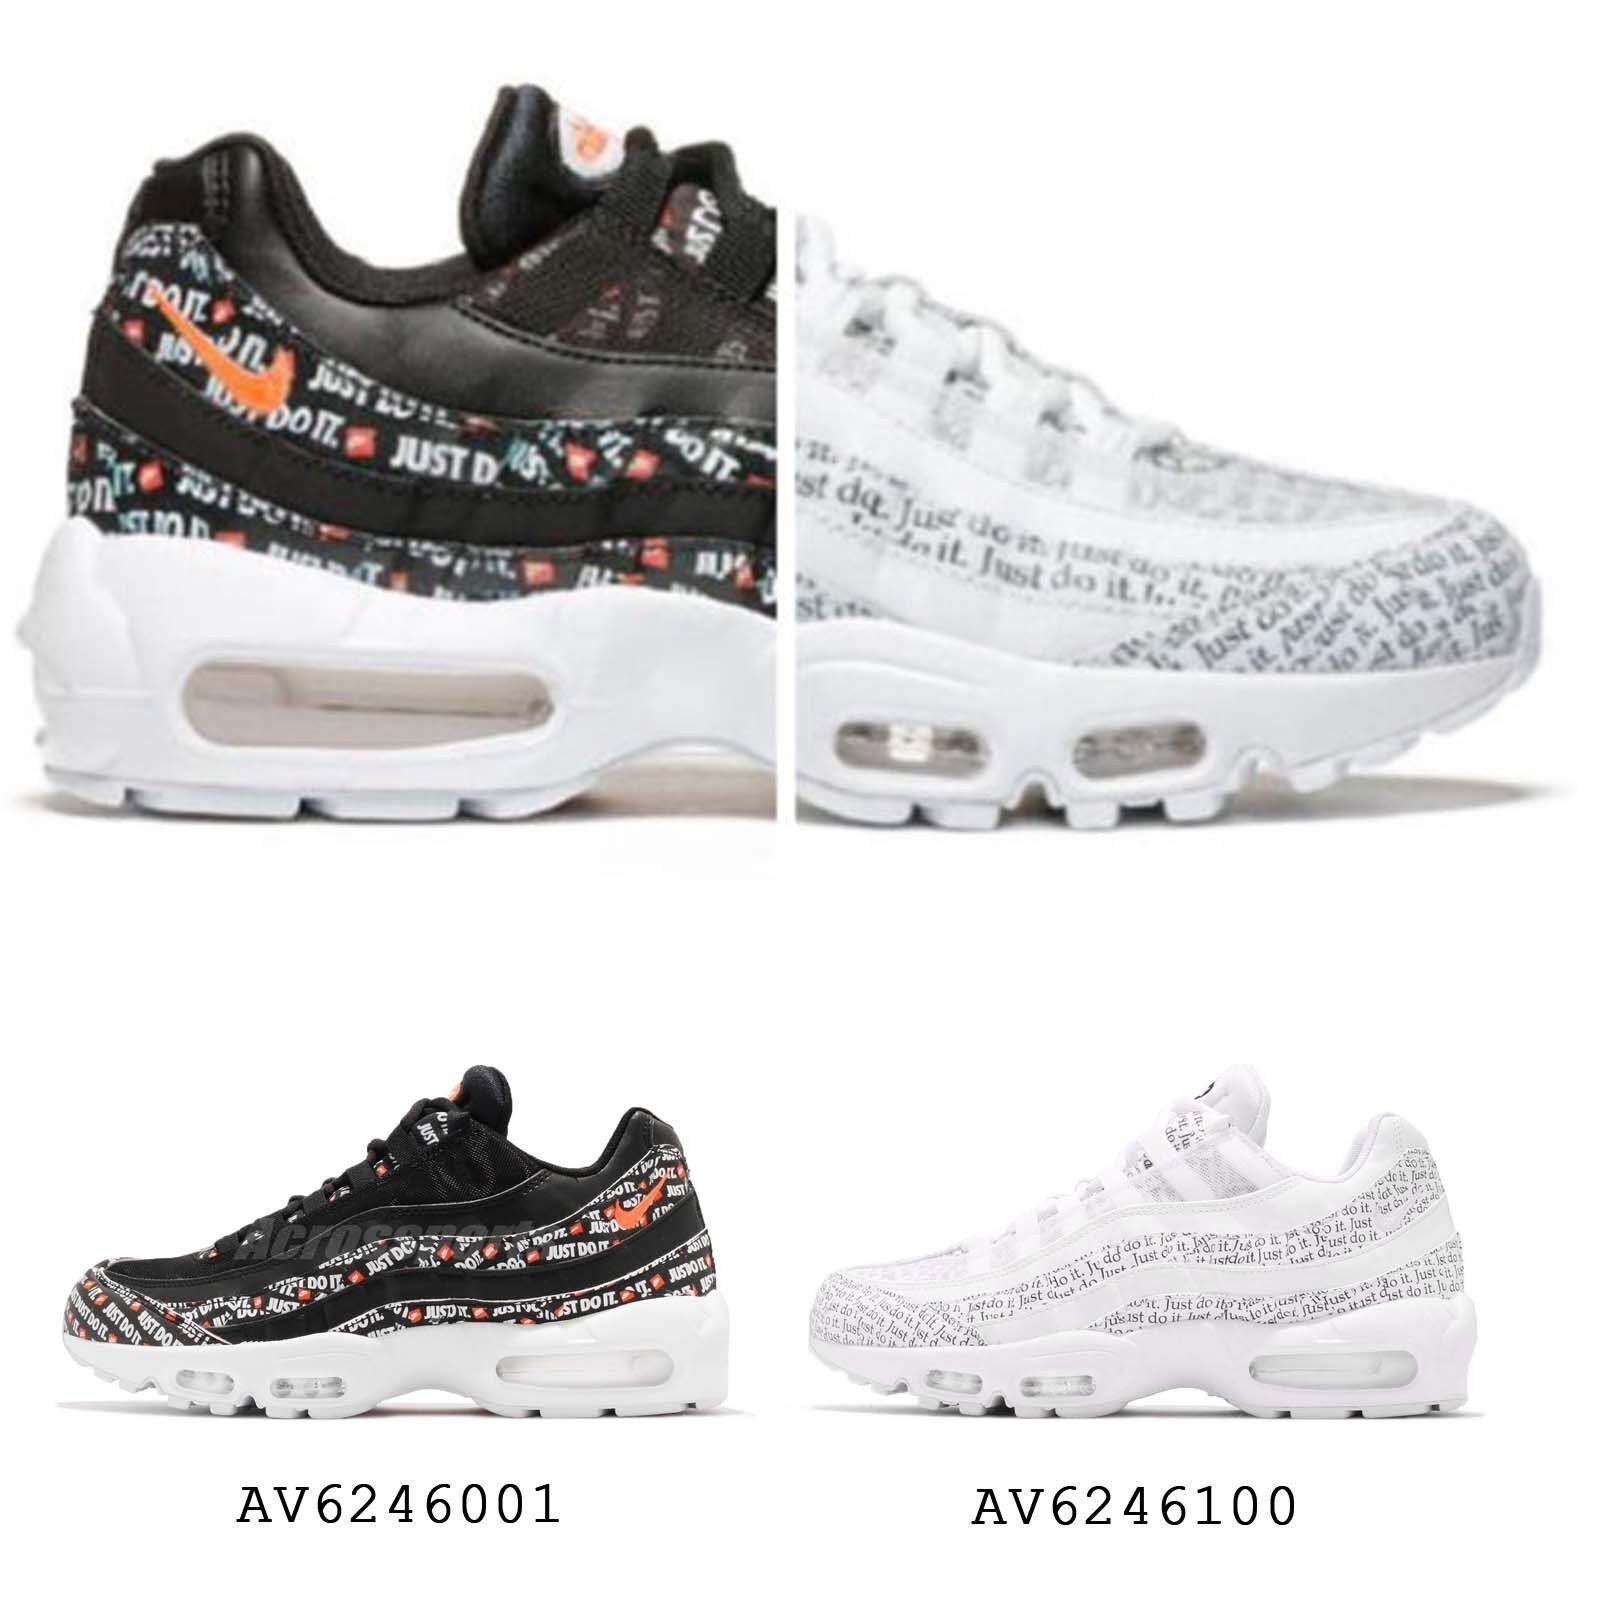 Nike Air Max 95 SE Just Do It Pack noir / blanc homme Limited Sneakers Pick 1